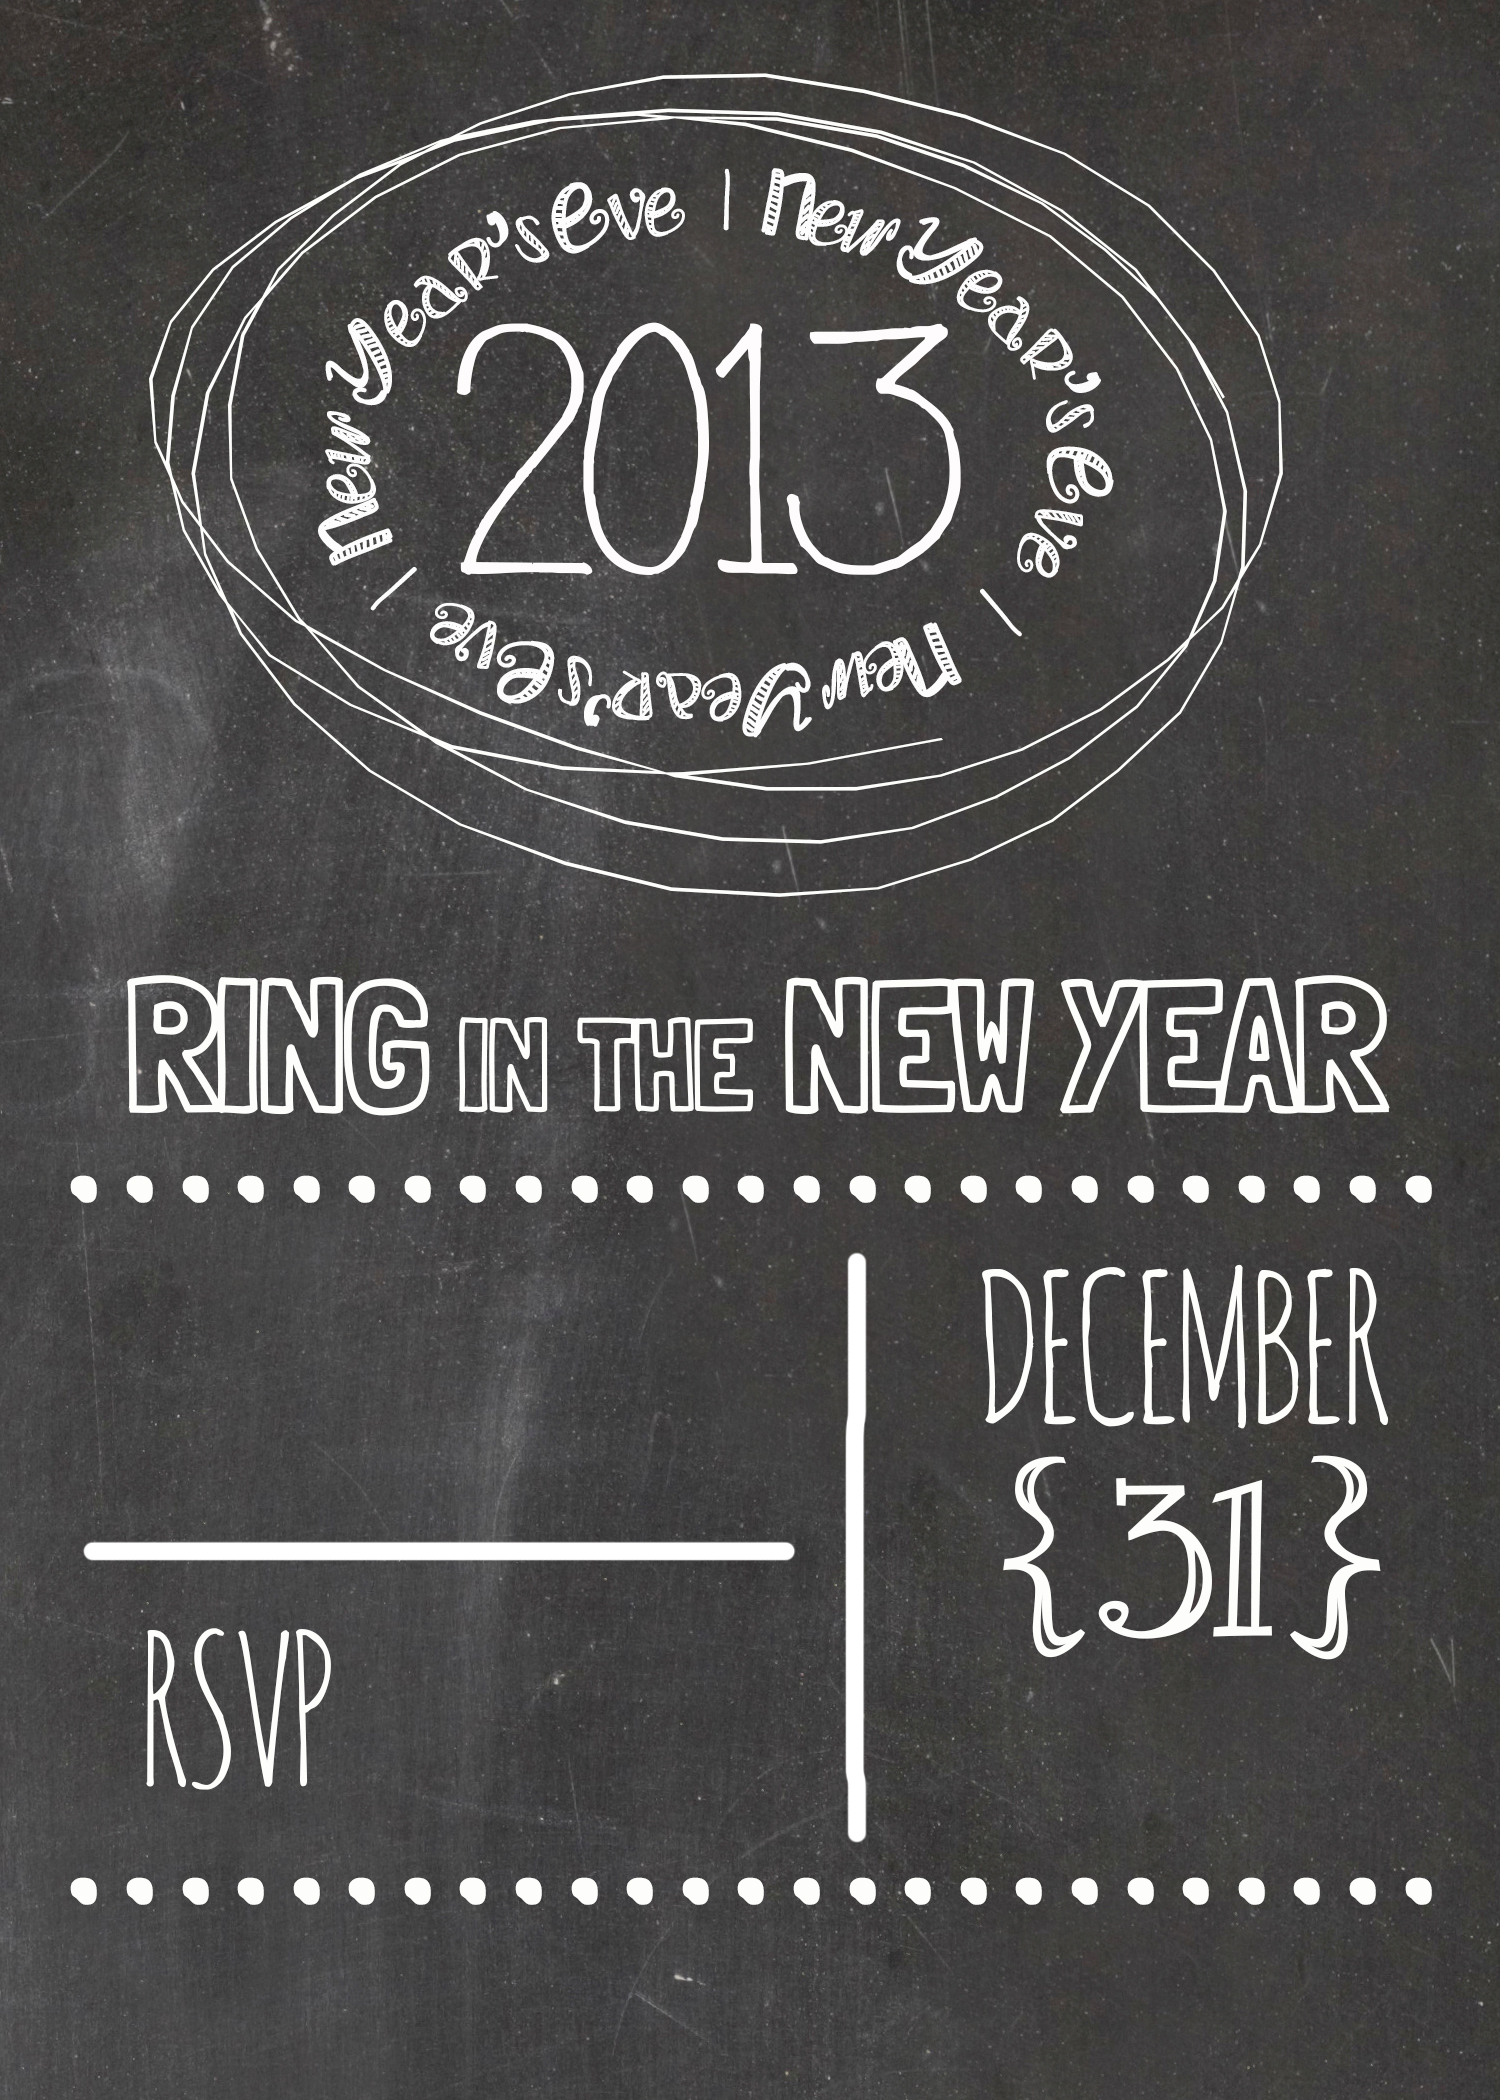 New Year S Eve Party Free Invitation Moritz Fine Blog Designs